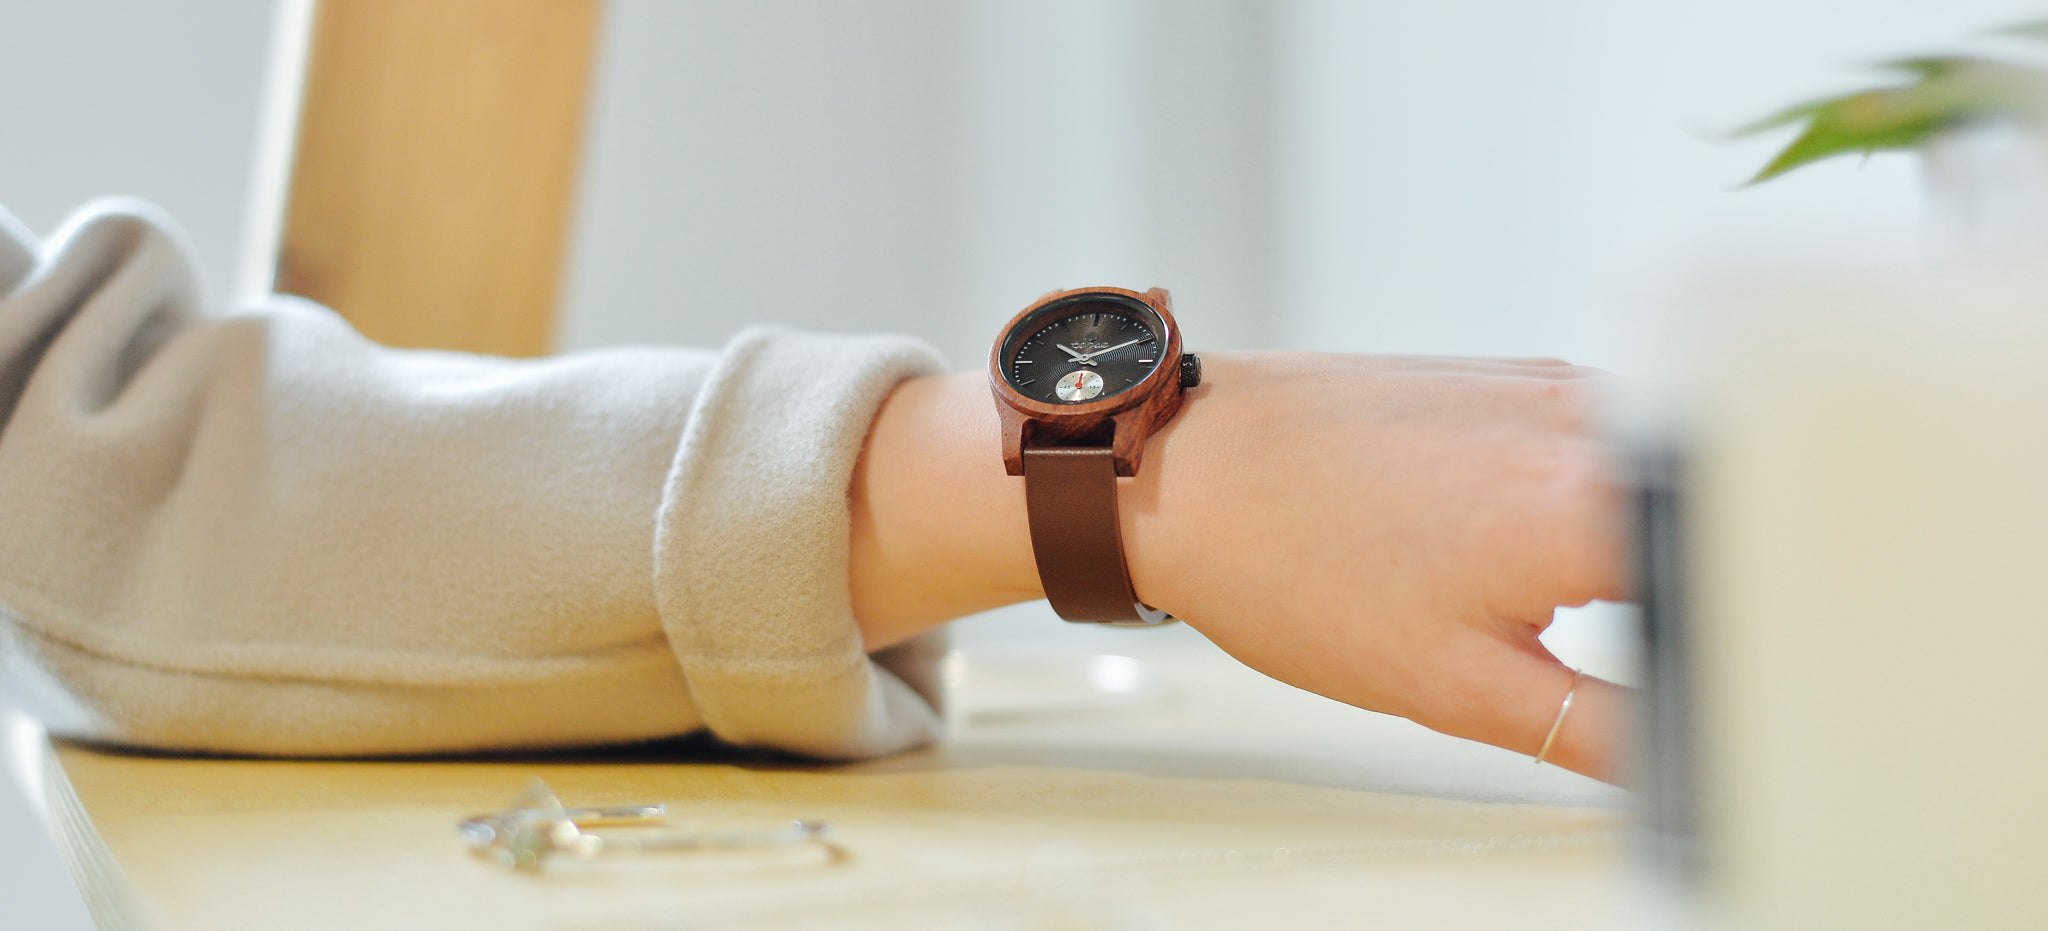 Tense Watches Rosewood Wood Watch